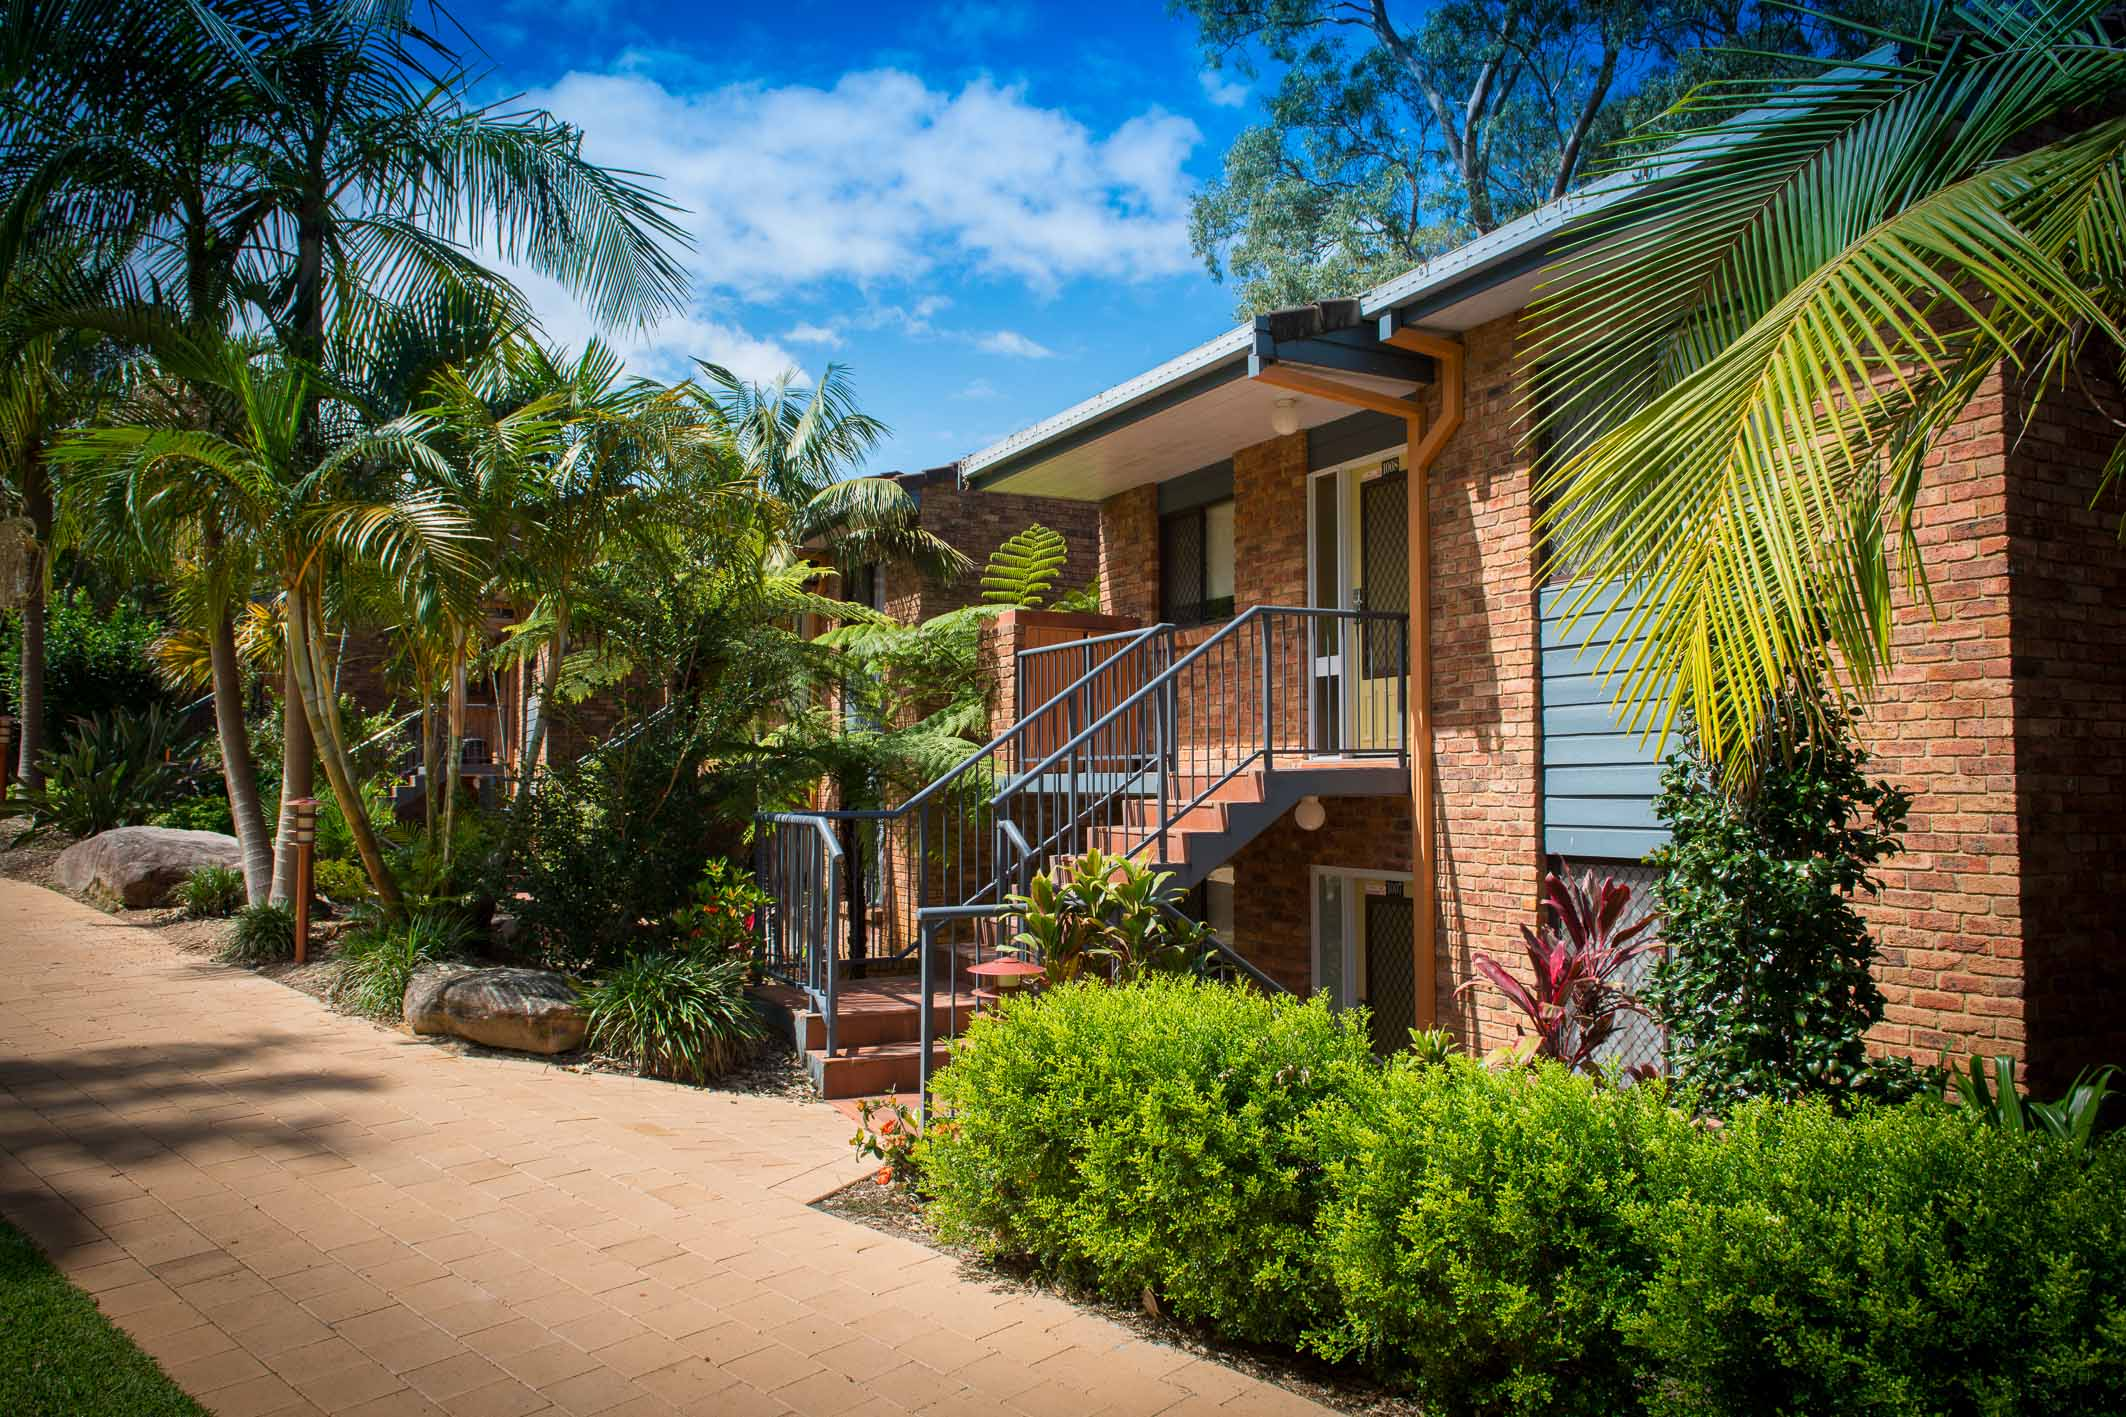 Boambee Bay Resort - Stayed